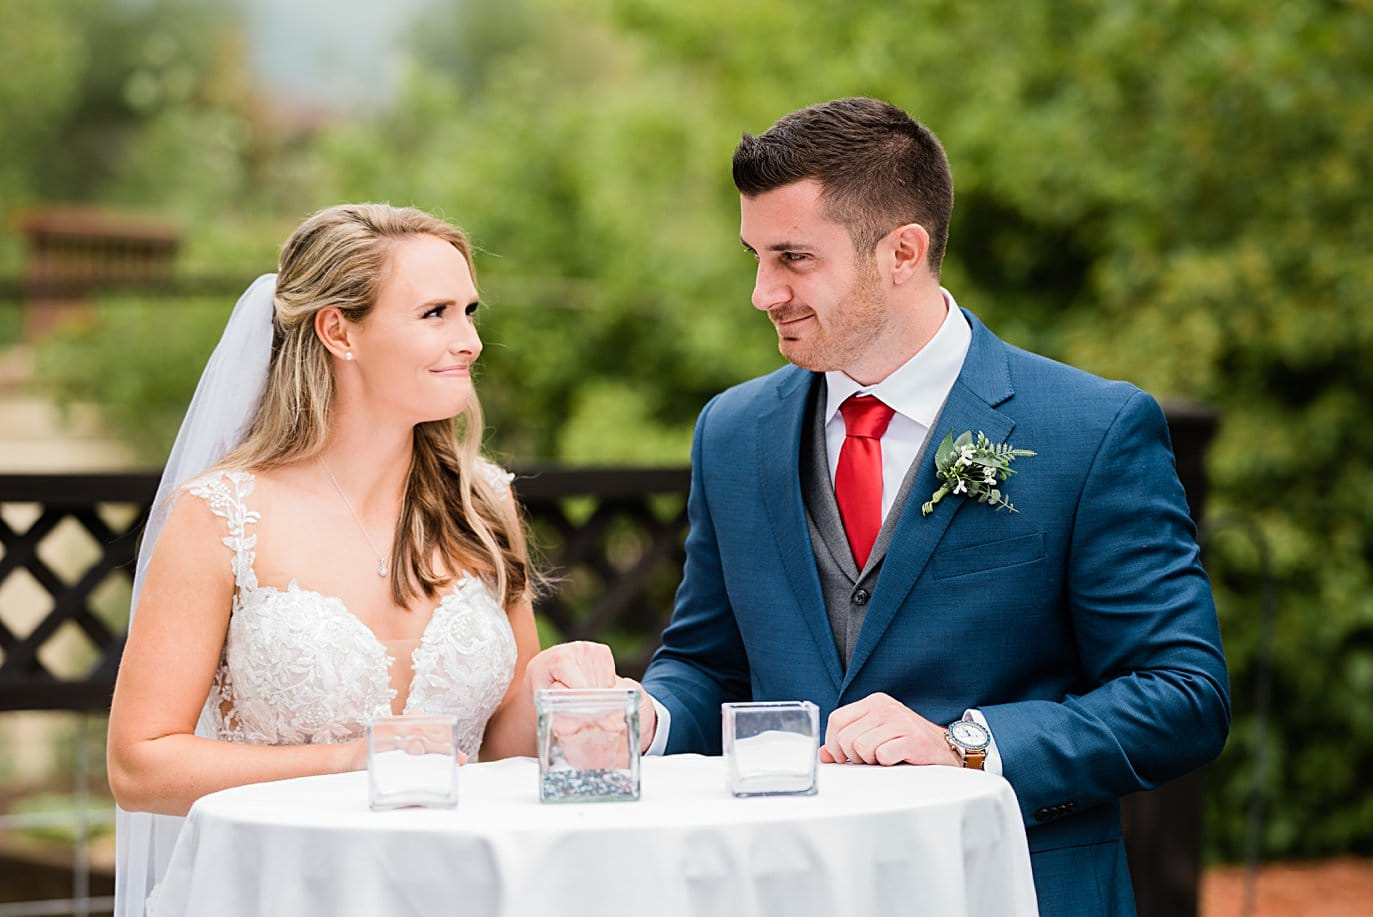 bride and groom at glass ceremony at Larkspur Vail Wedding by Lyons Wedding photographer Jennie Crate